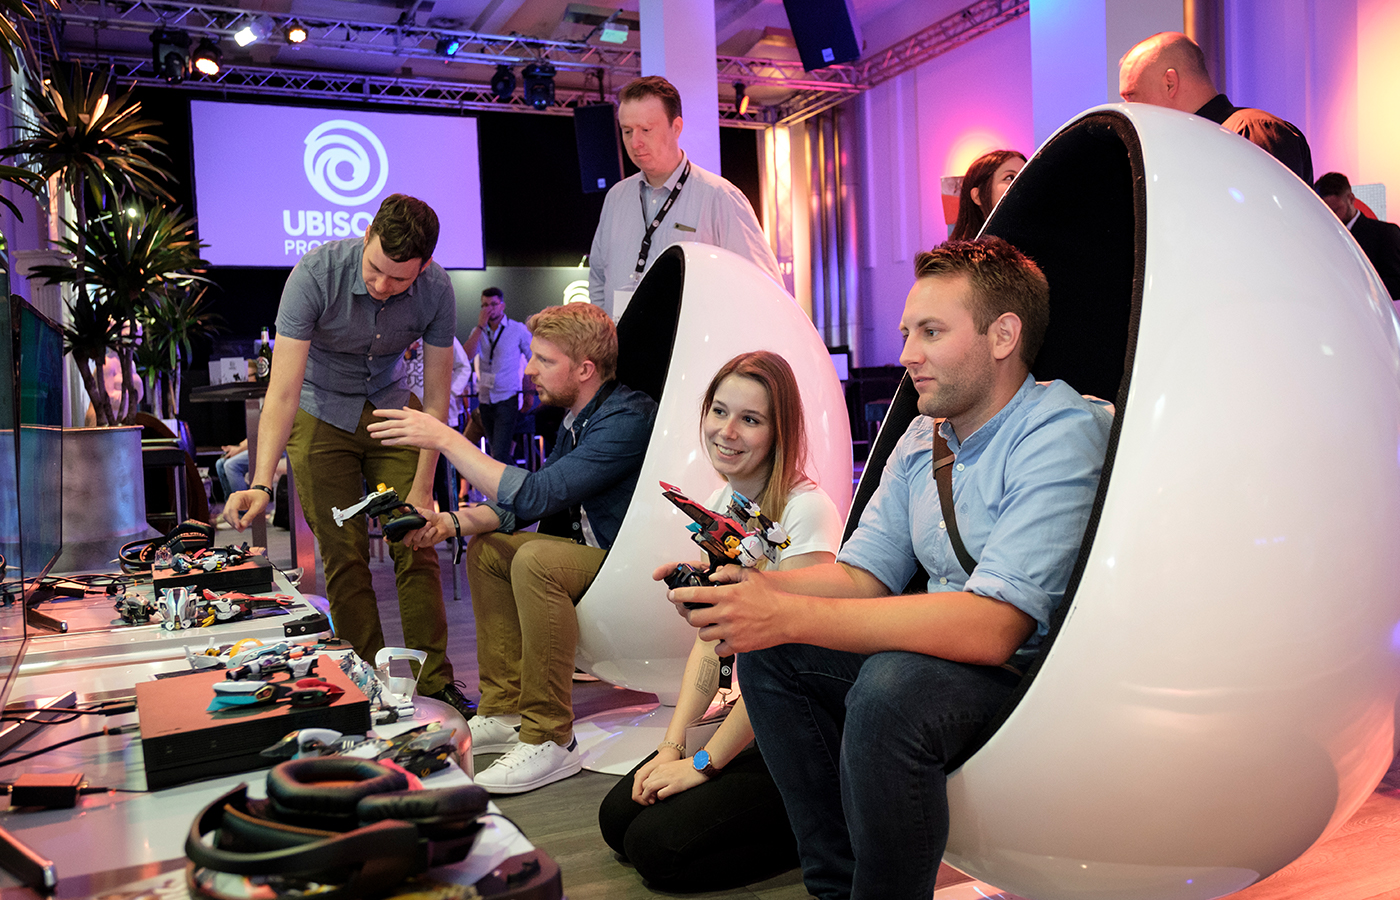 Ubisoft – Product Day 2018